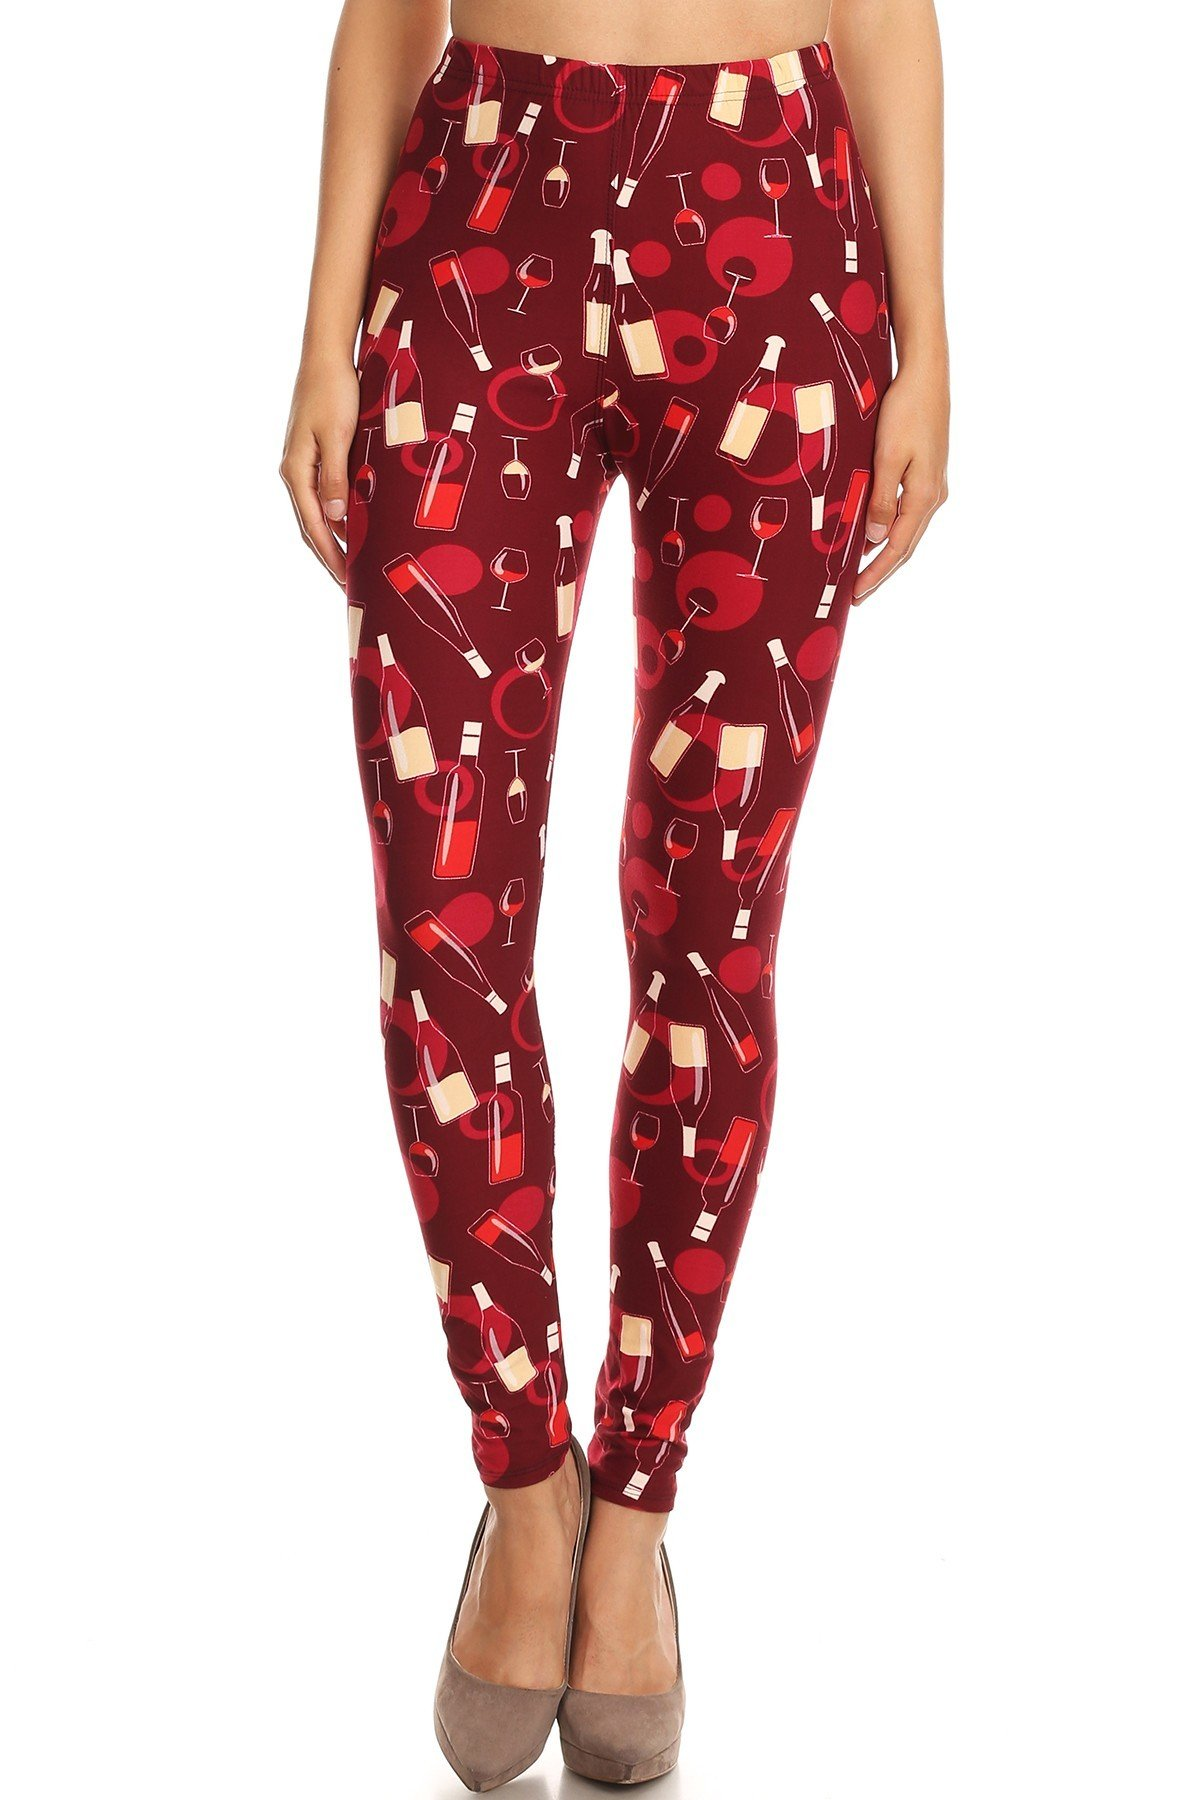 iZZYZX Women's 3 X 5X Wine Glass and Bottle Pattern Printed Leggings